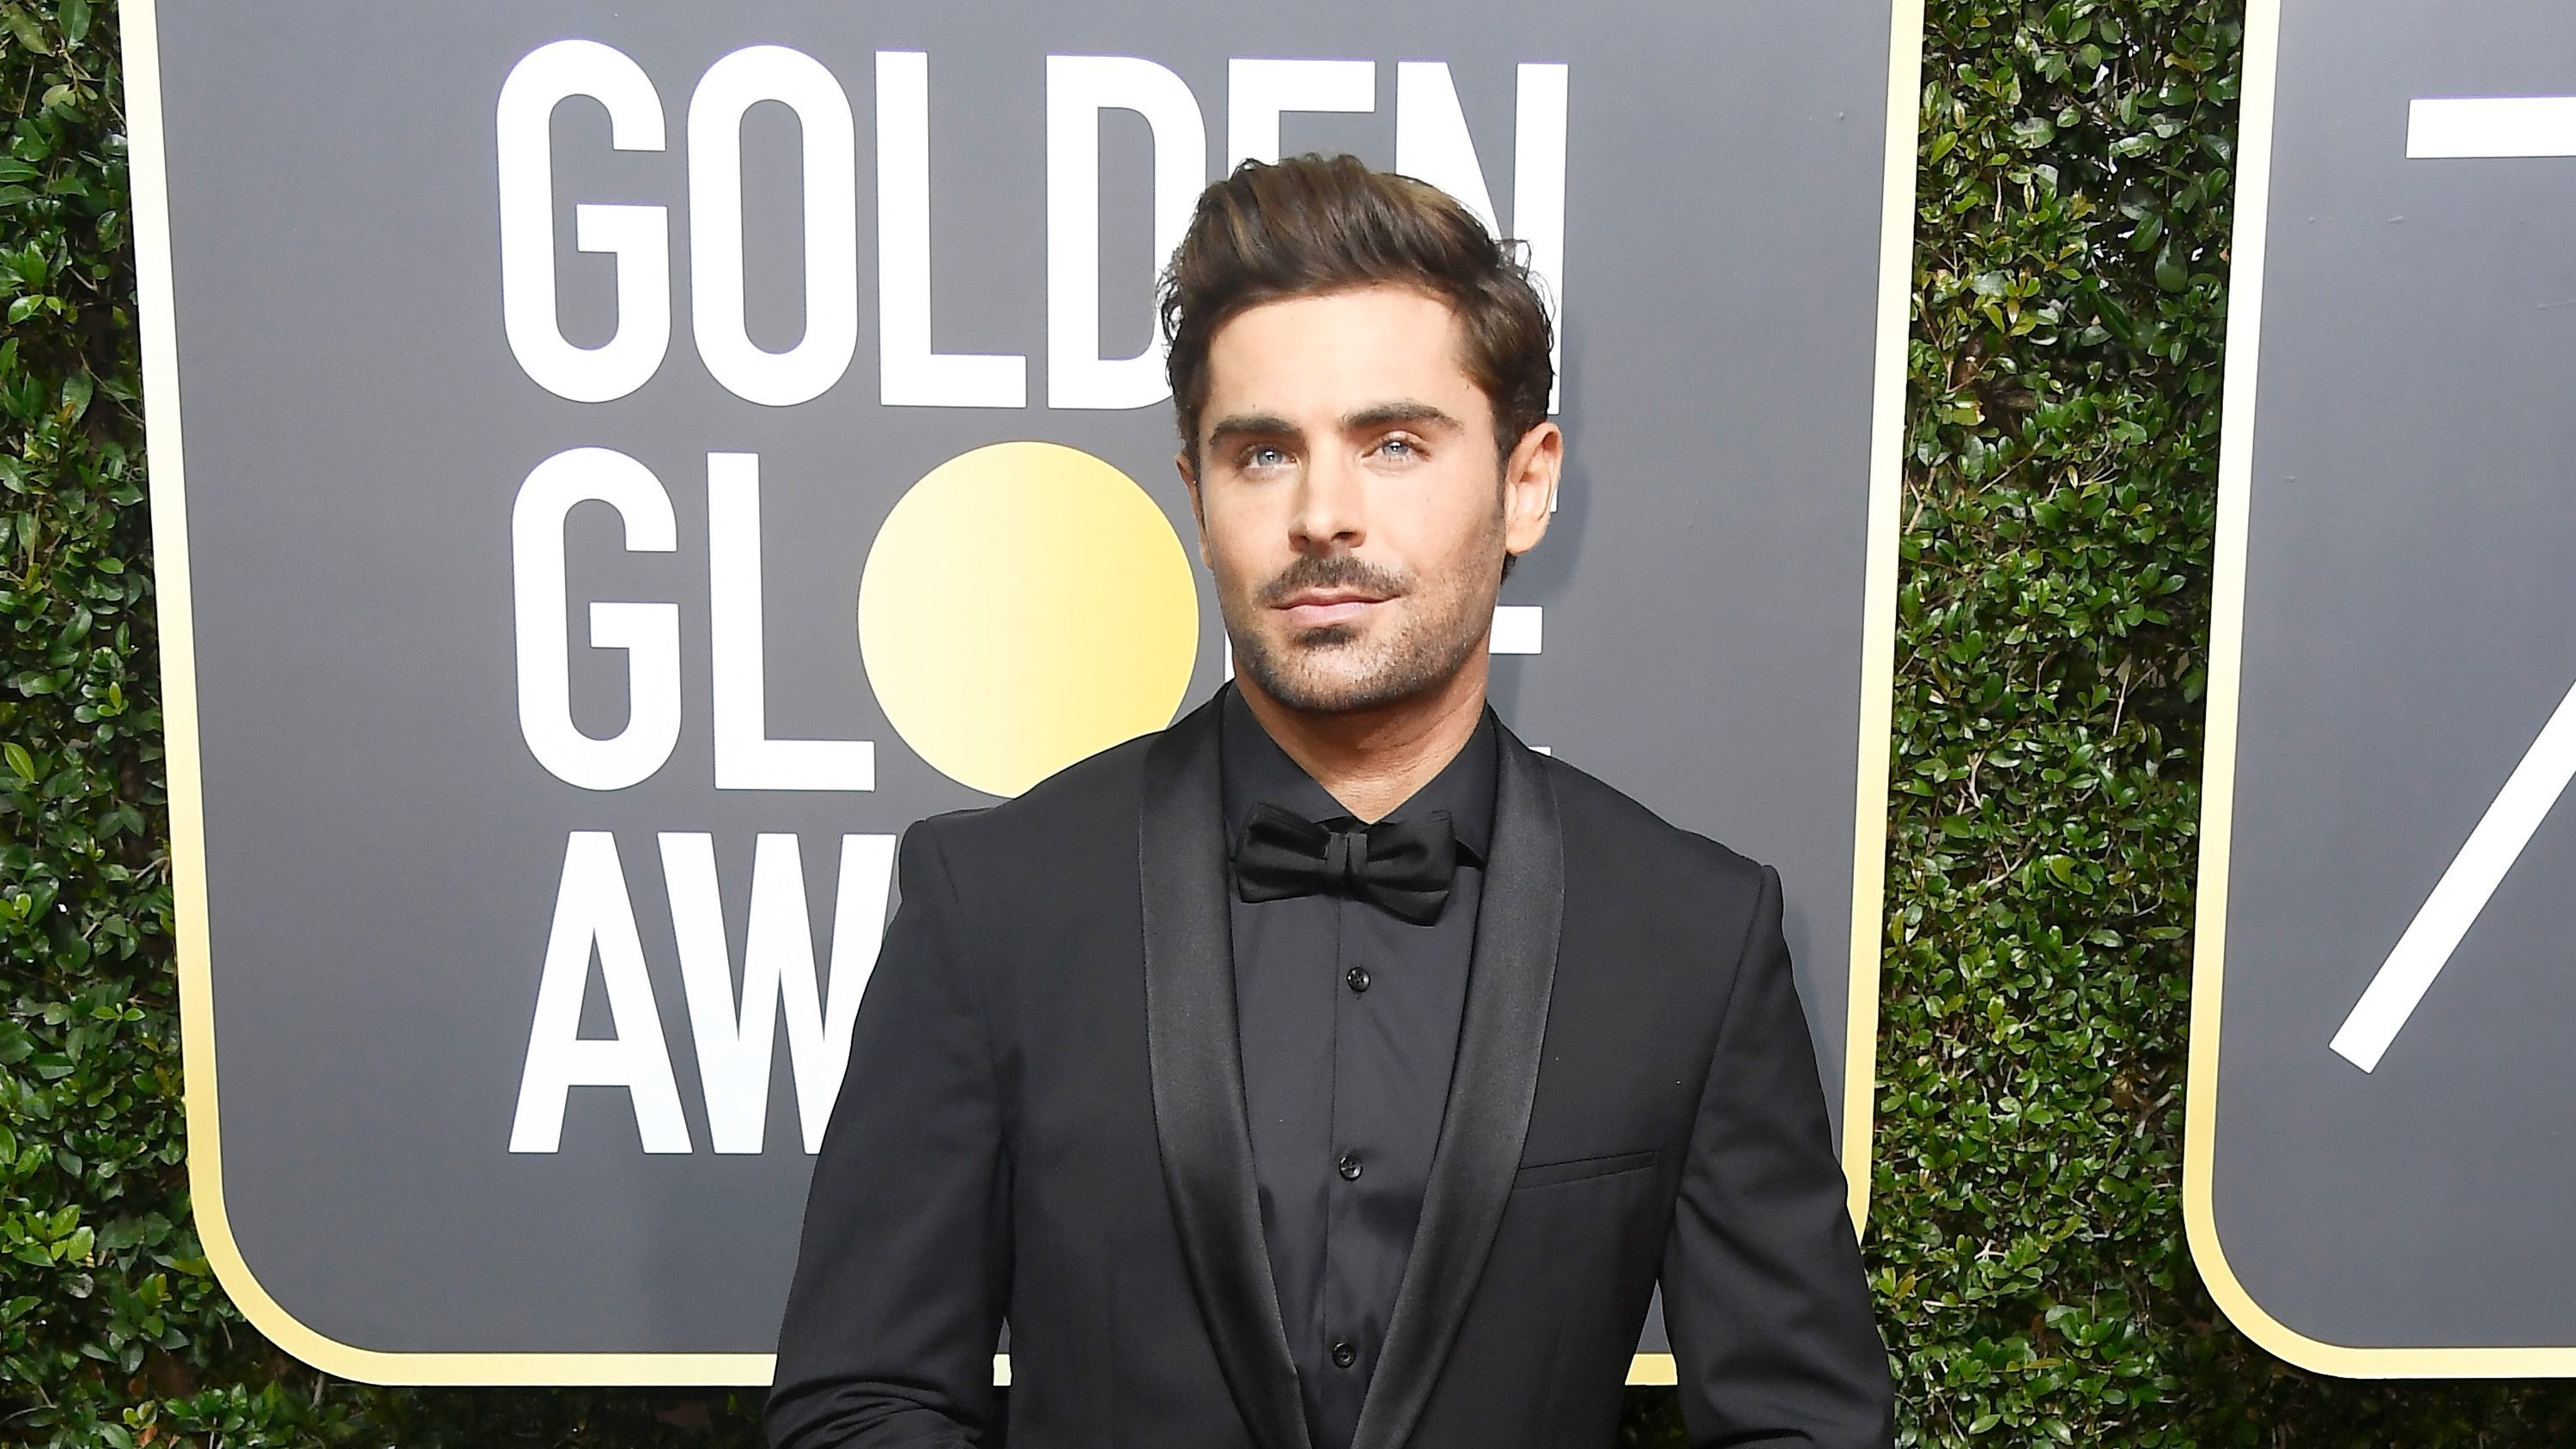 Here's Your First Look At Zac Efron As Ted Bundy